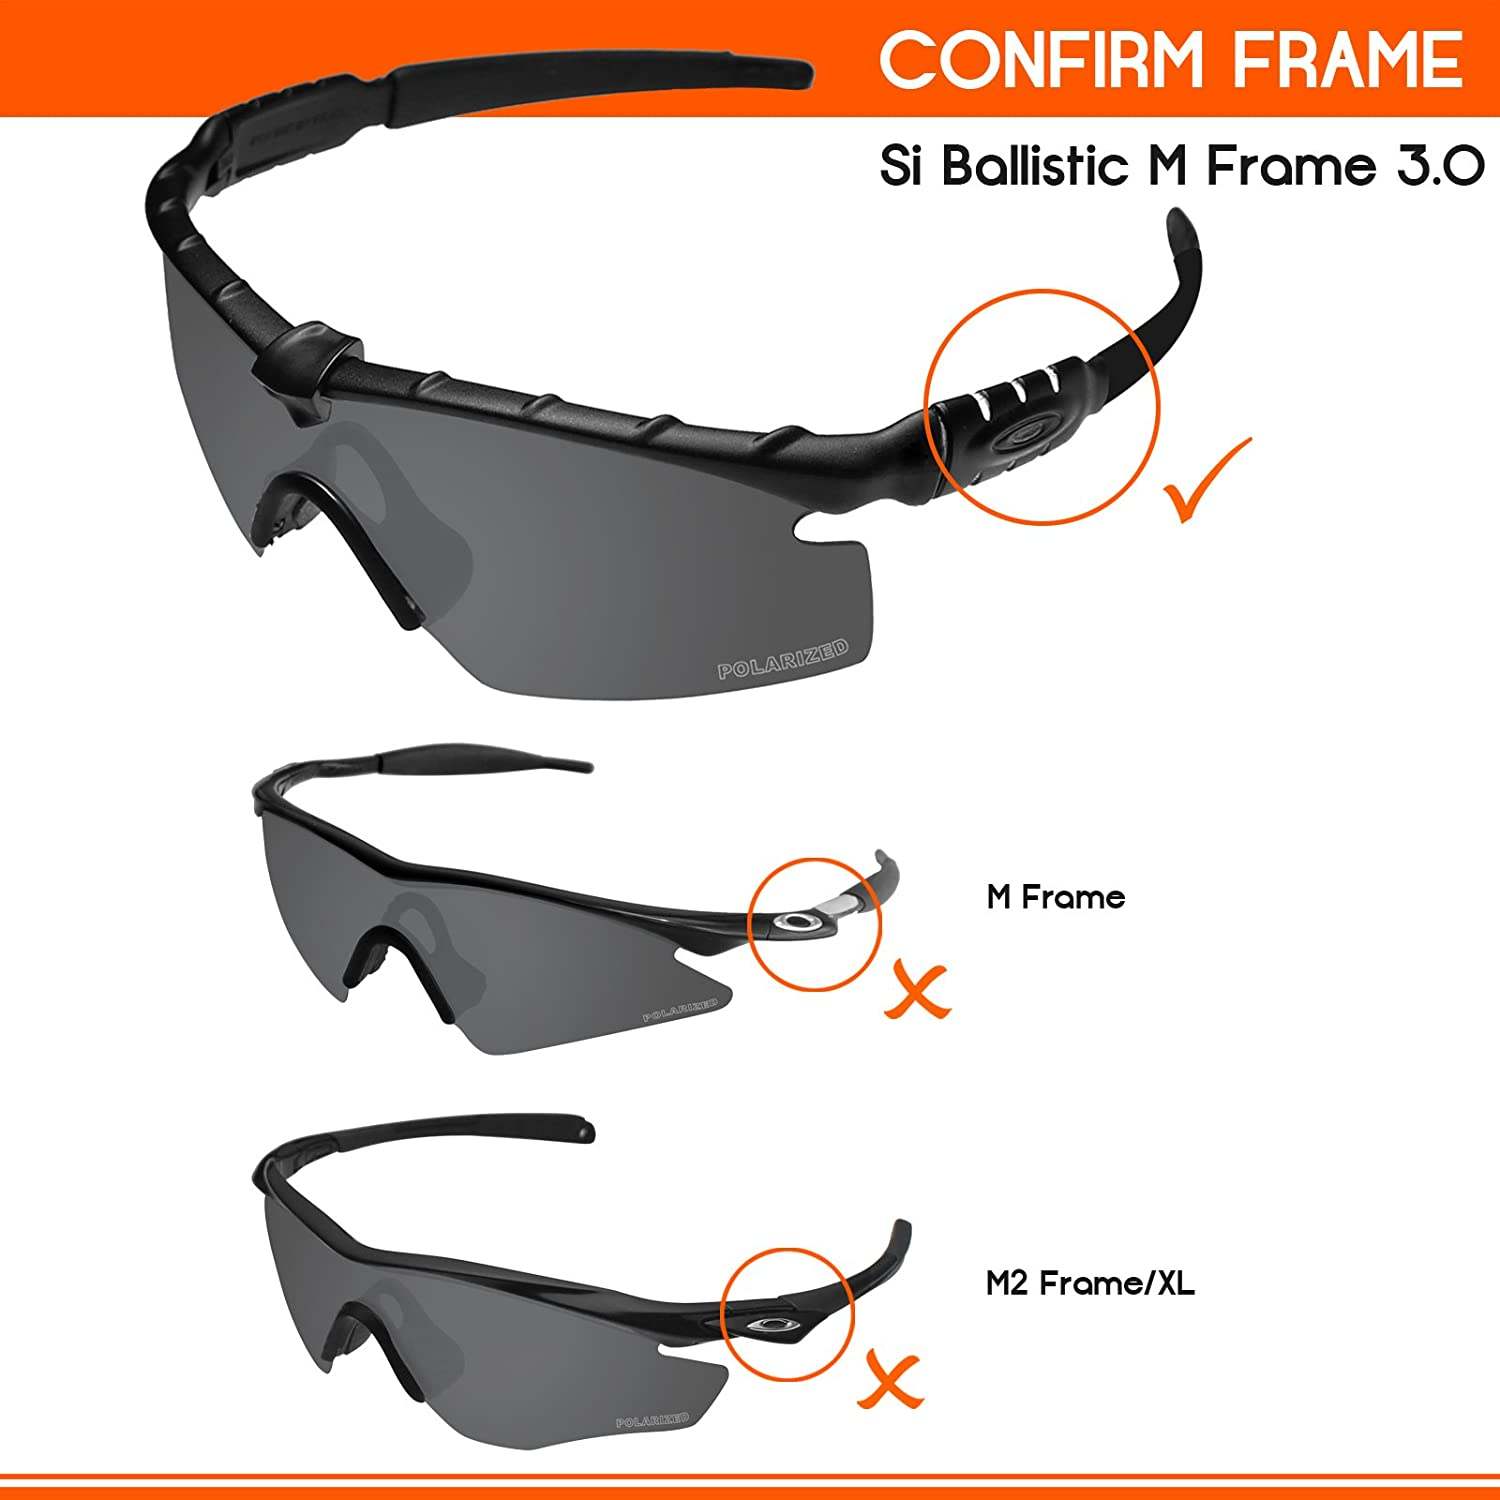 d6d19aa3c5 Amazon.com  Tintart Performance Lenses Compatible with Oakley Si Ballistic  M Frame 3.0 Polarized Etched-Carbon Black  Clothing